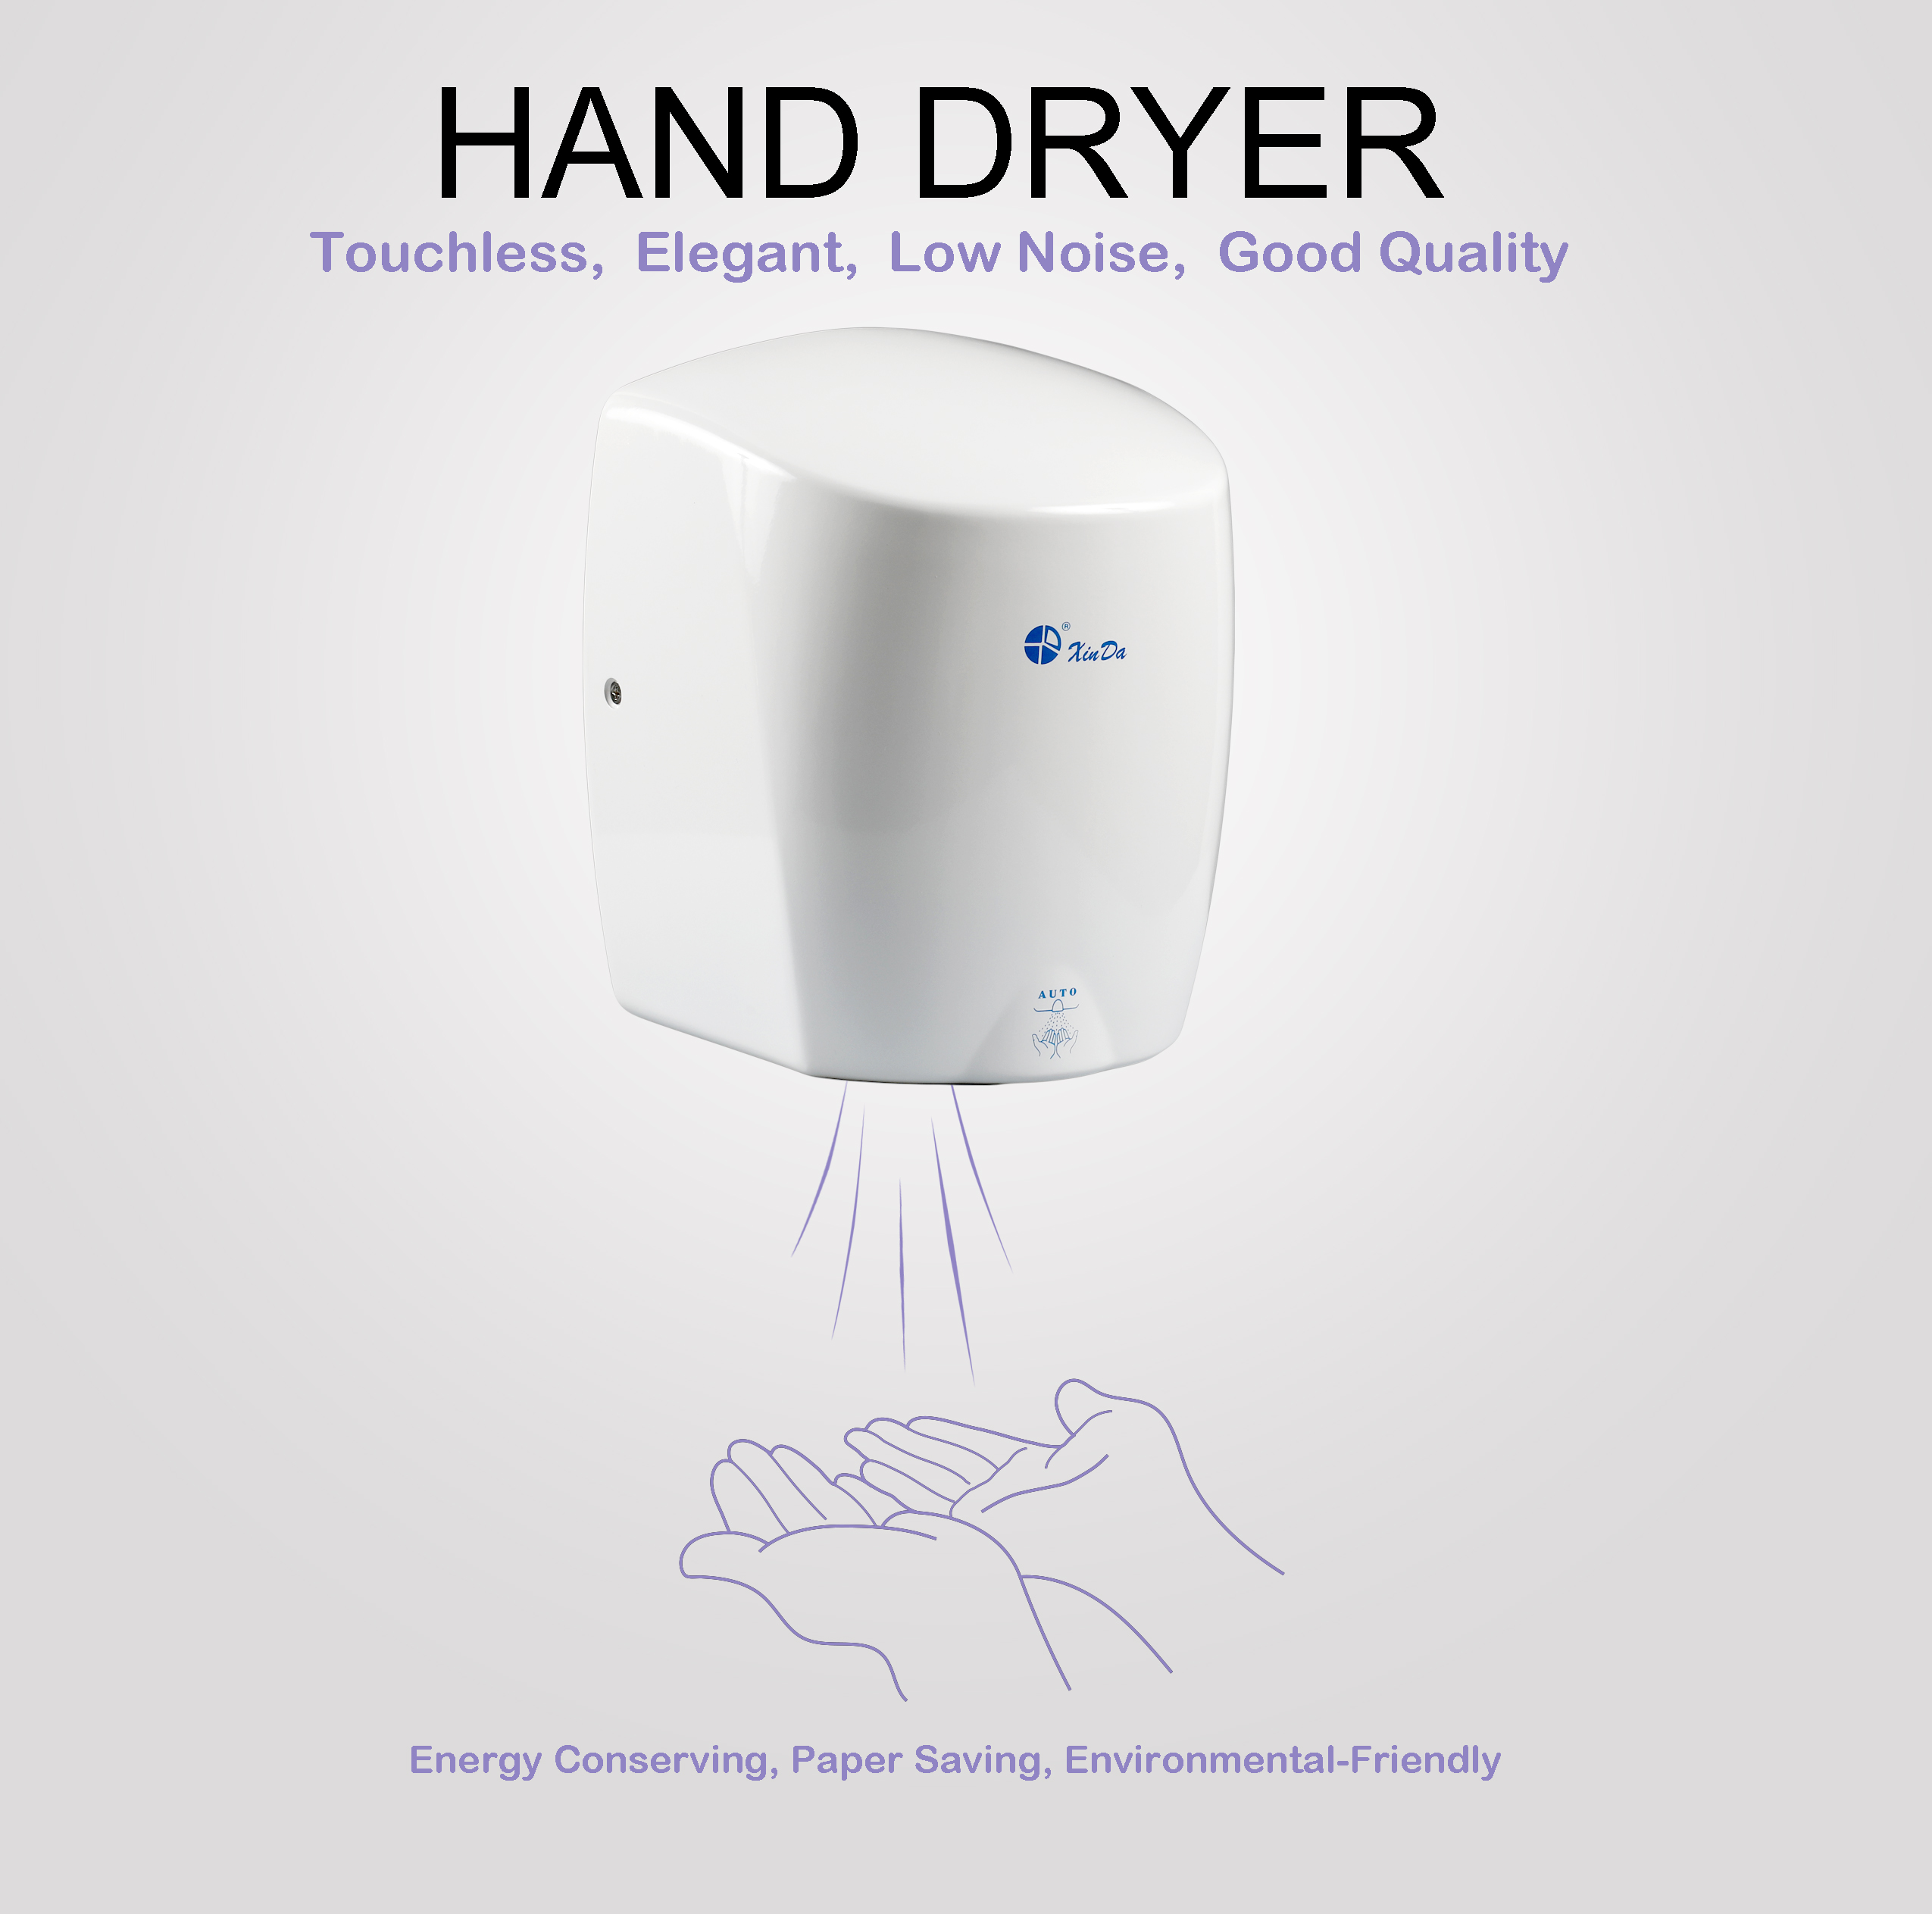 Cylindrical hand dryer with infrared sensor